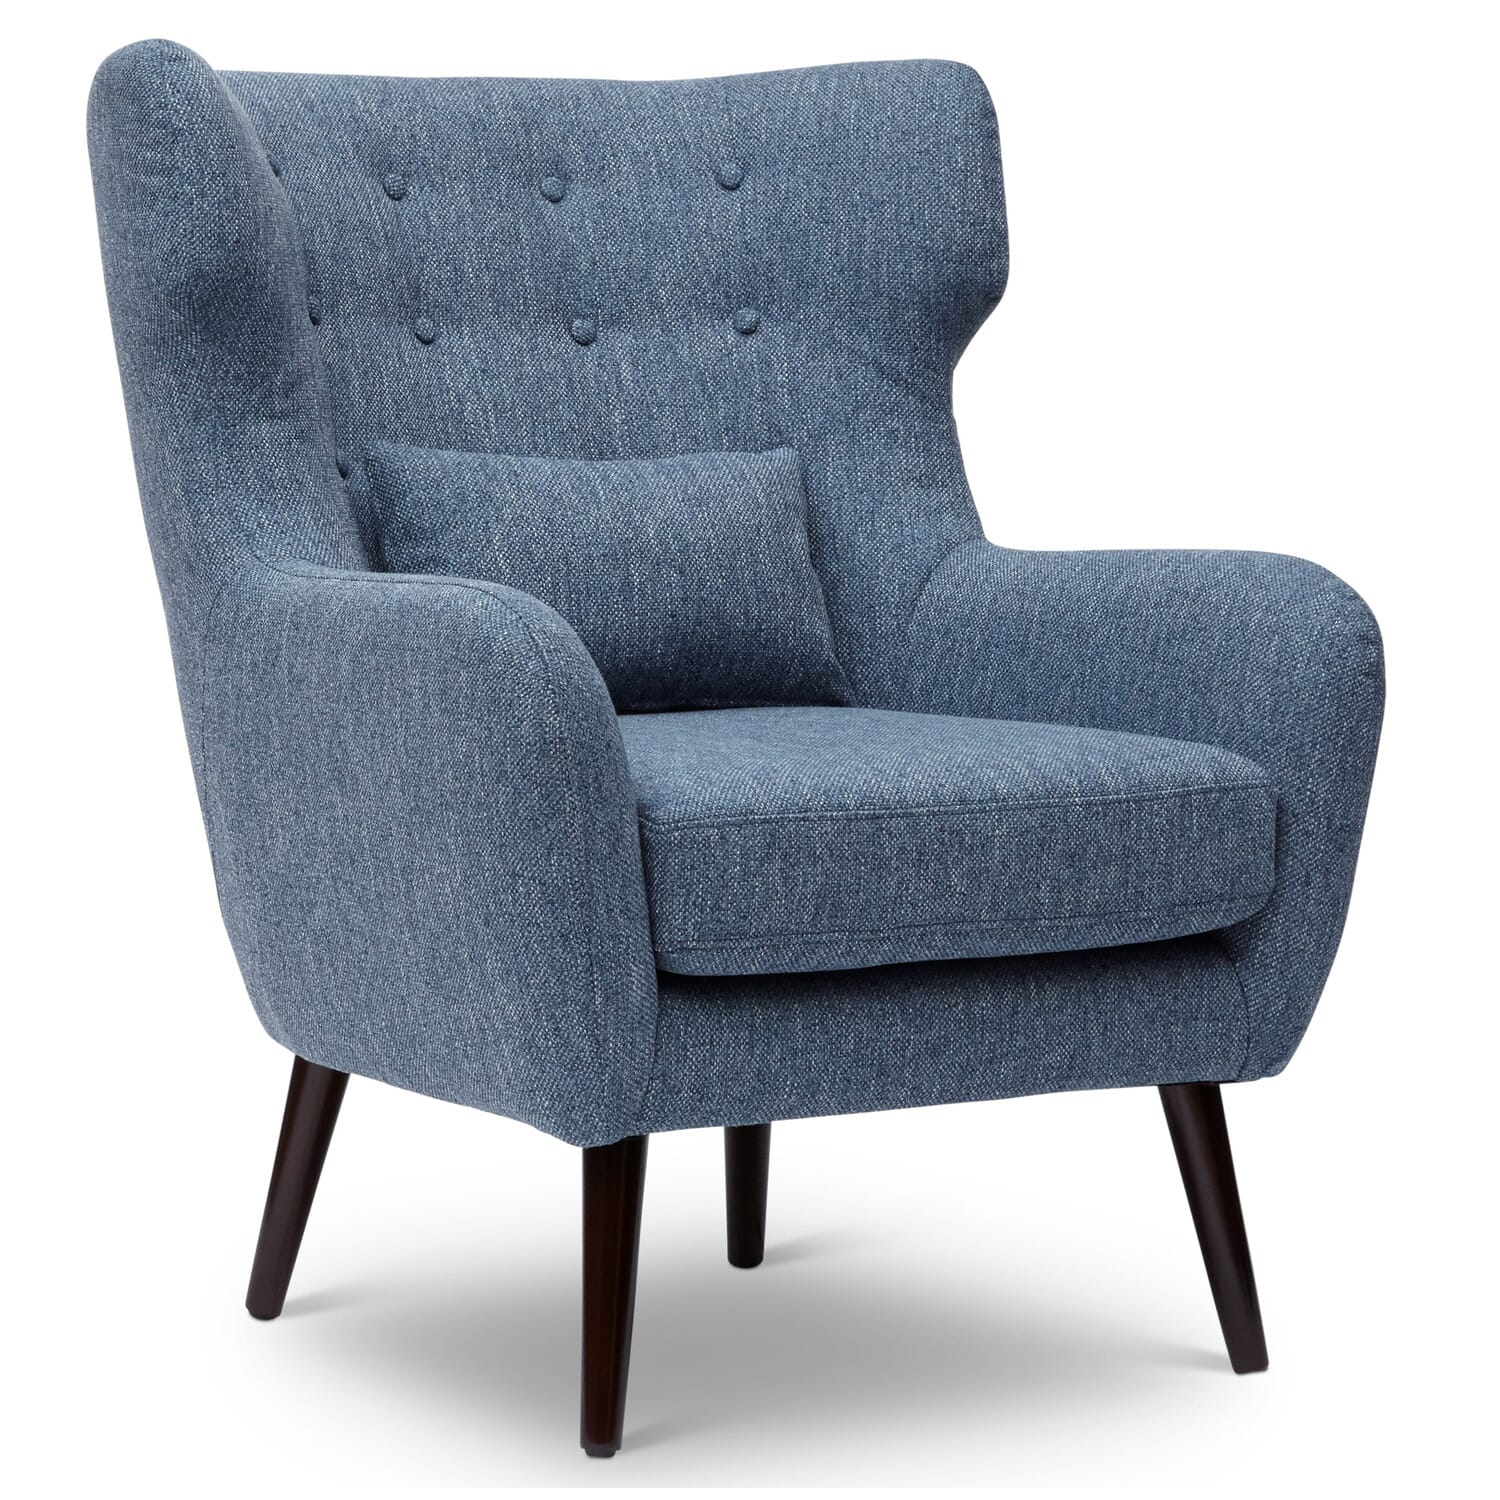 Bayley blue accent chair chairs wgr furniture